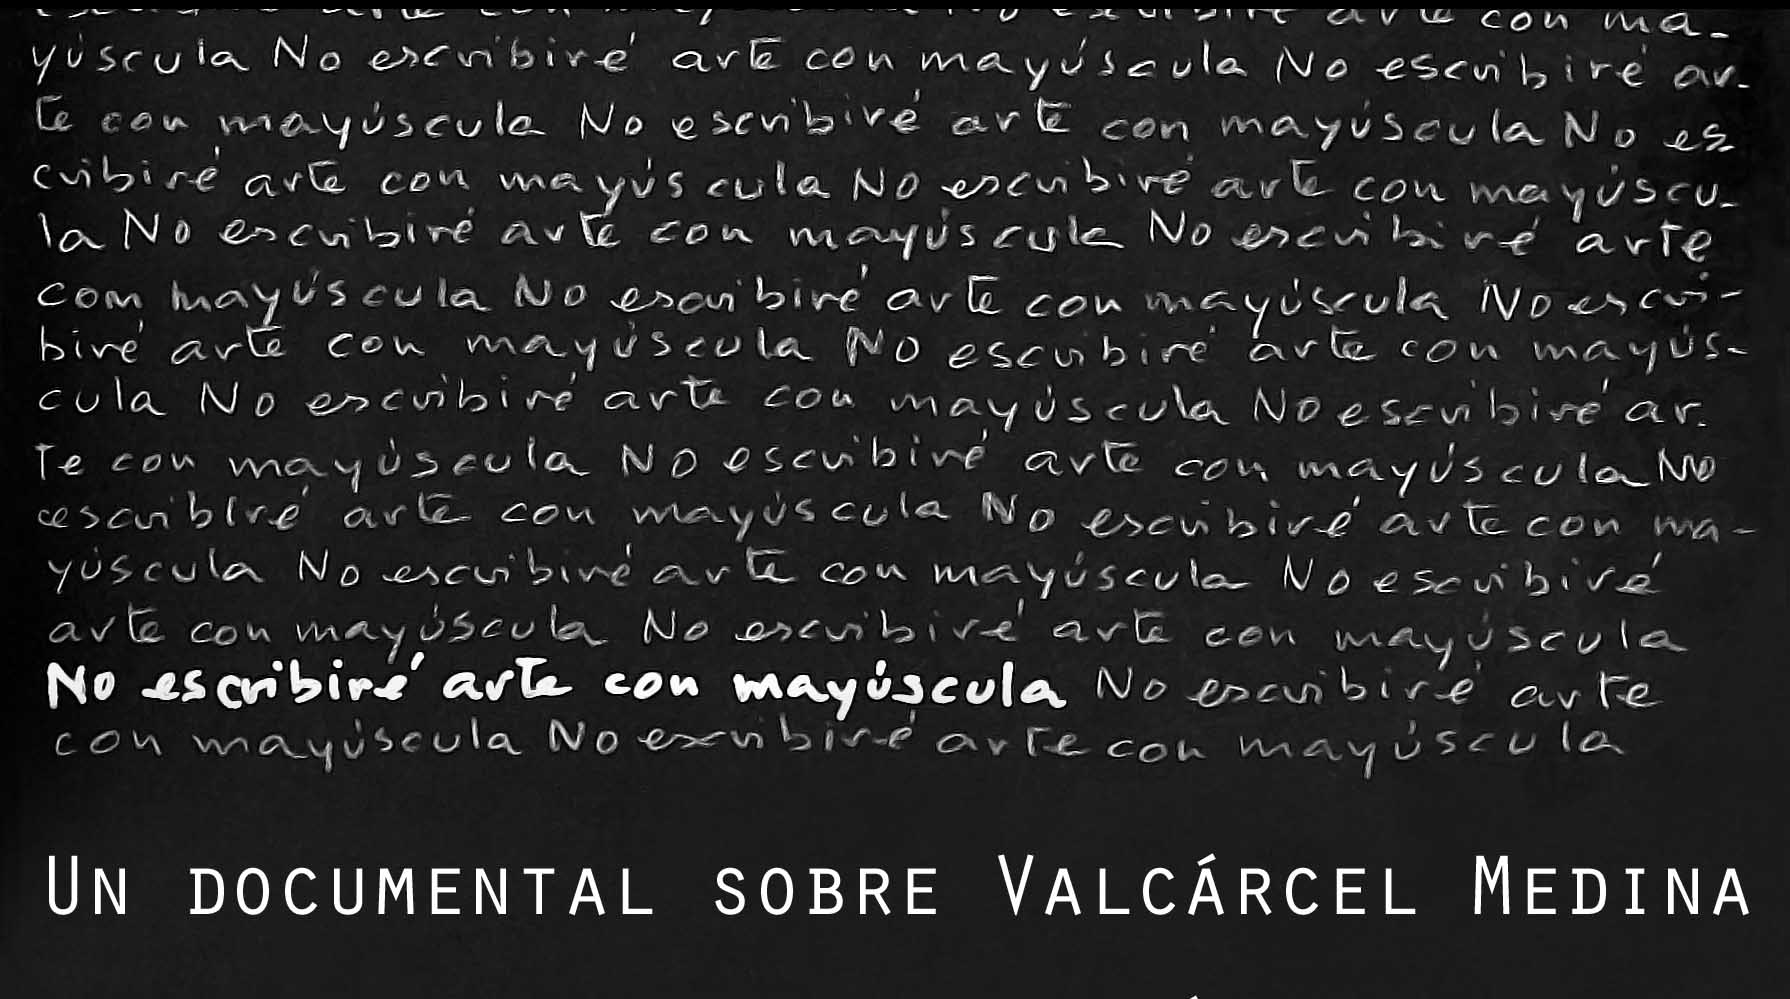 documental valcarcel medina